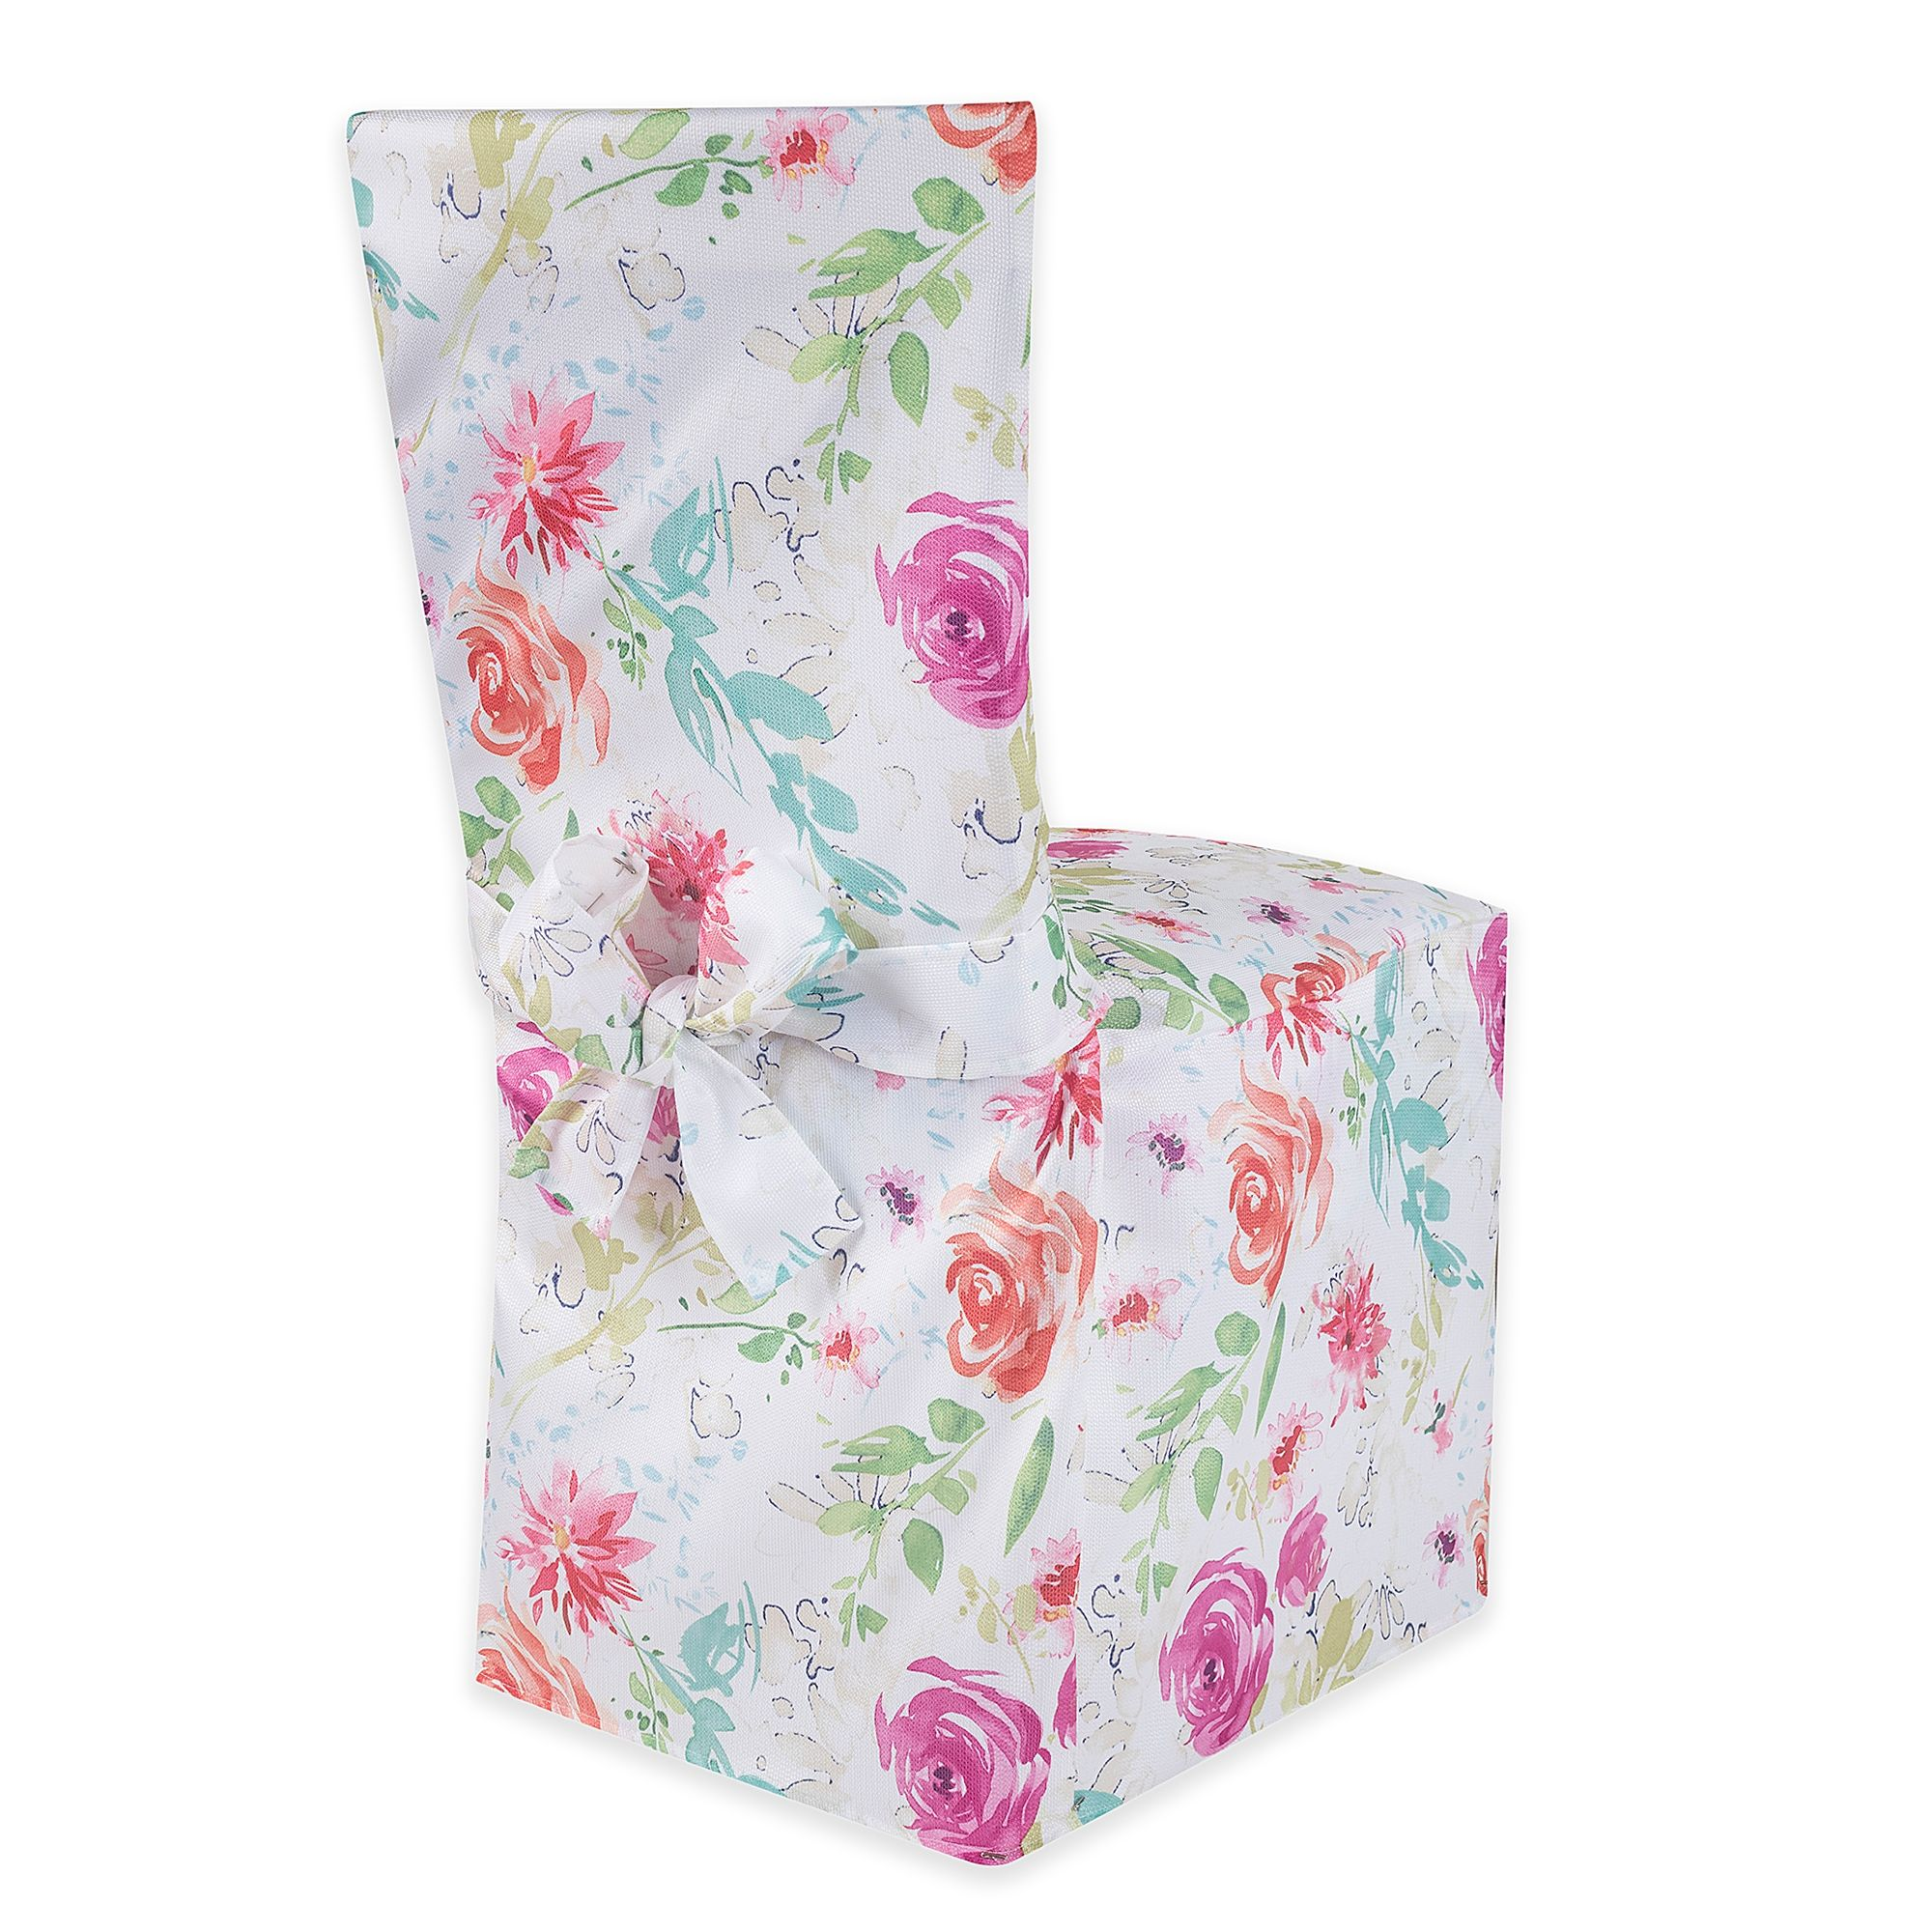 Spring Splendor Floral Dining Chair Cover Bed Bath Beyond Dining Chair Covers Chair Cover Dining Room Chair Covers